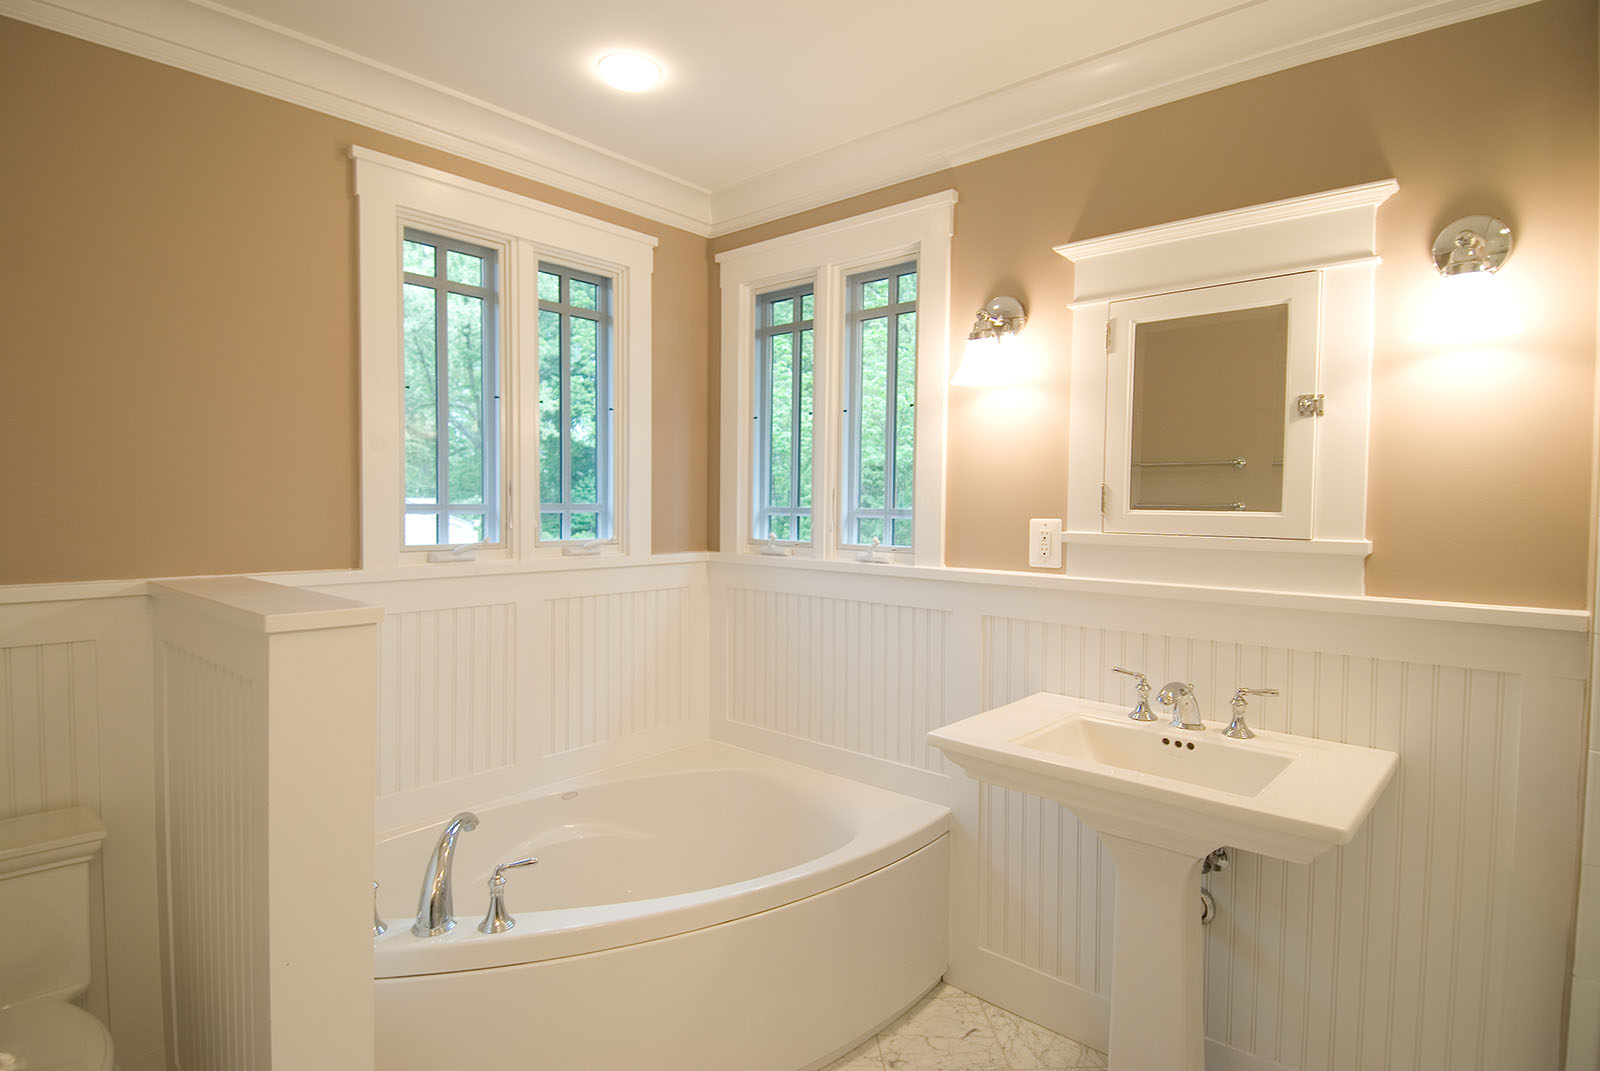 Northern Virginia Bath Remodeling Gallery Old Dominion Building Group - Bathroom remodeling virginia beach